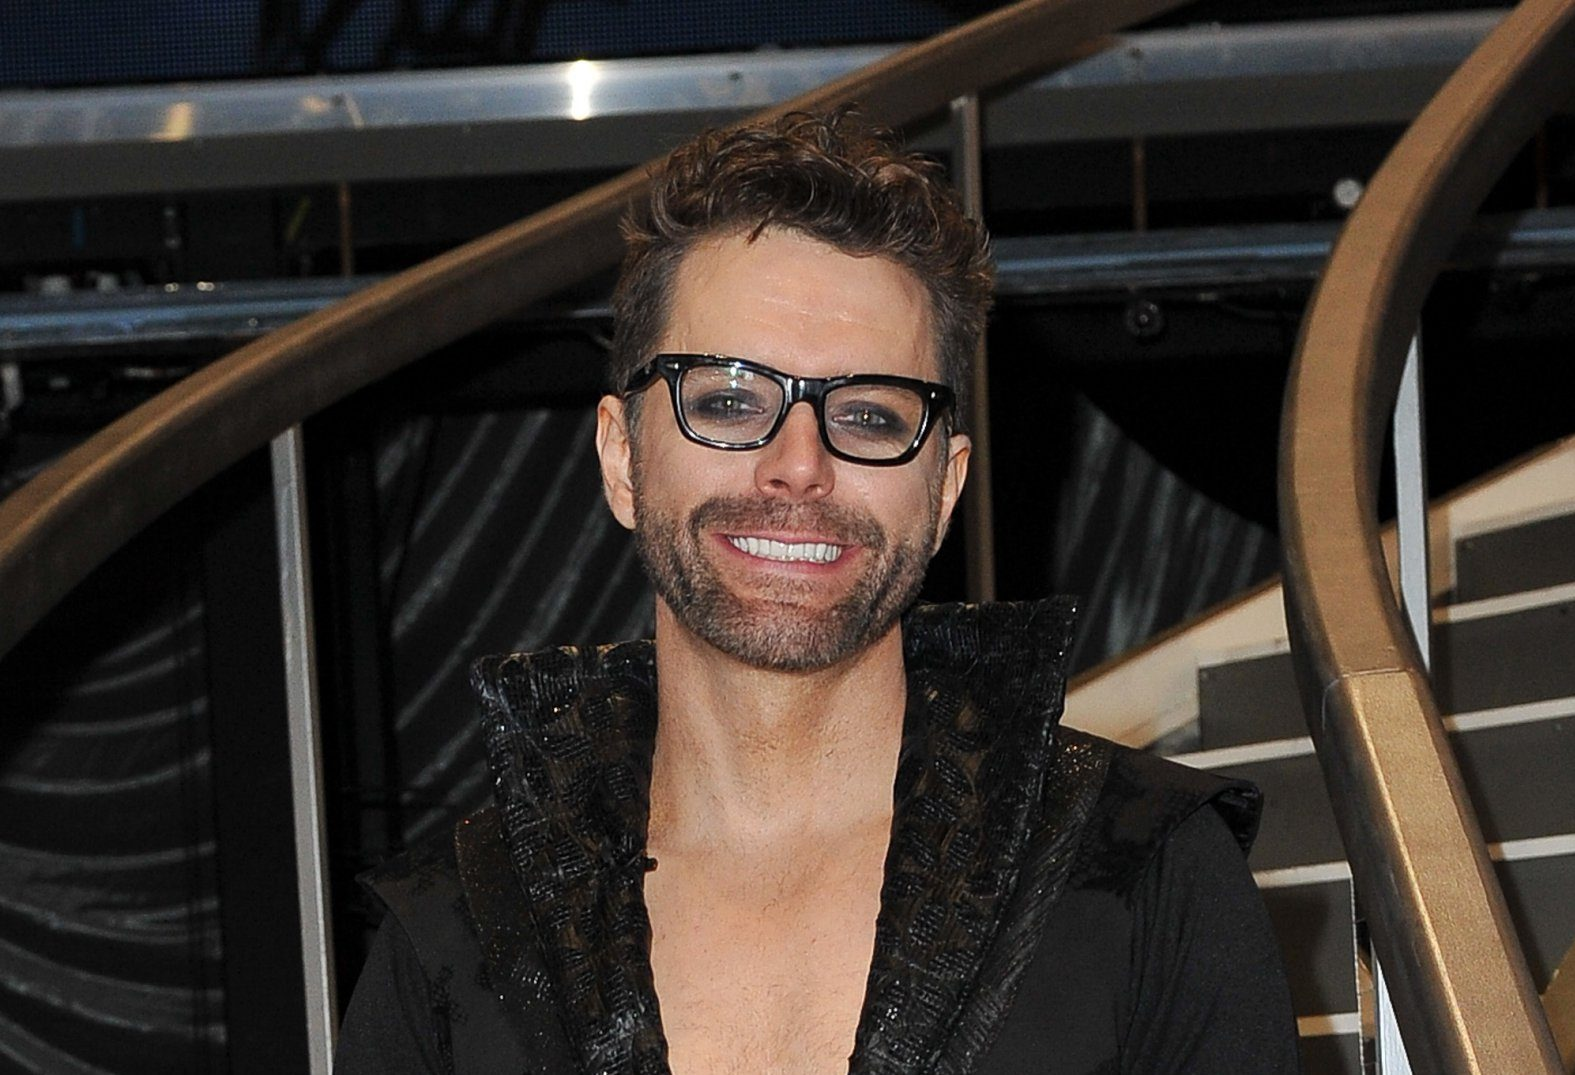 LOS ANGELES, CALIFORNIA - OCTOBER 29: Bobby Bones poses at 'Dancing with the Stars' Season 27 at CBS Televison City on October 29, 2018 in Los Angeles, California. (Photo by Allen Berezovsky/Getty Images)